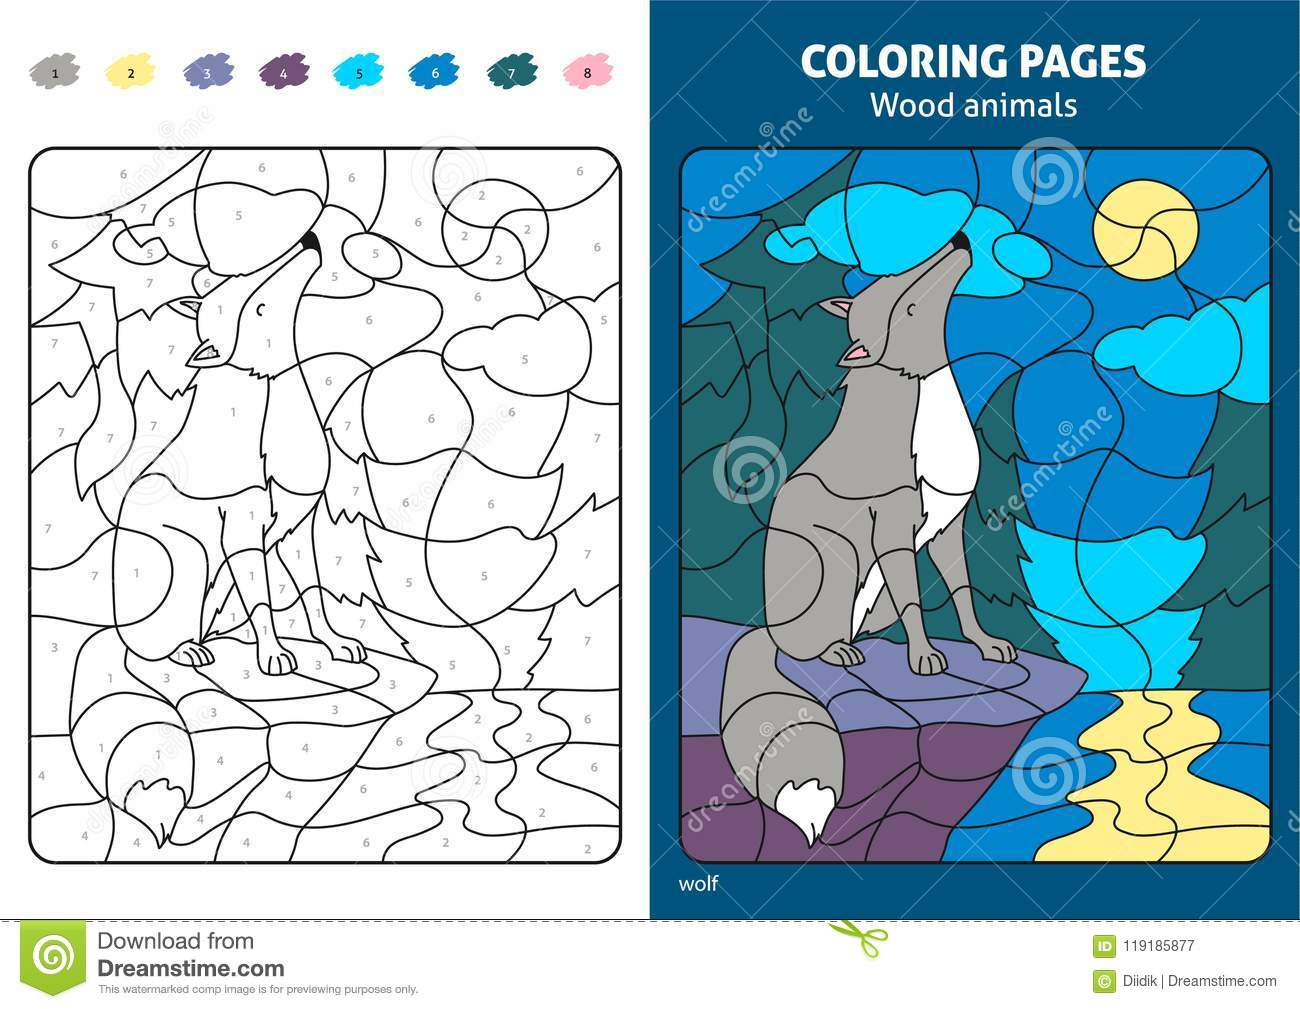 Wood Animals Coloring Page For Kids, Wolf. Stock Vector ...